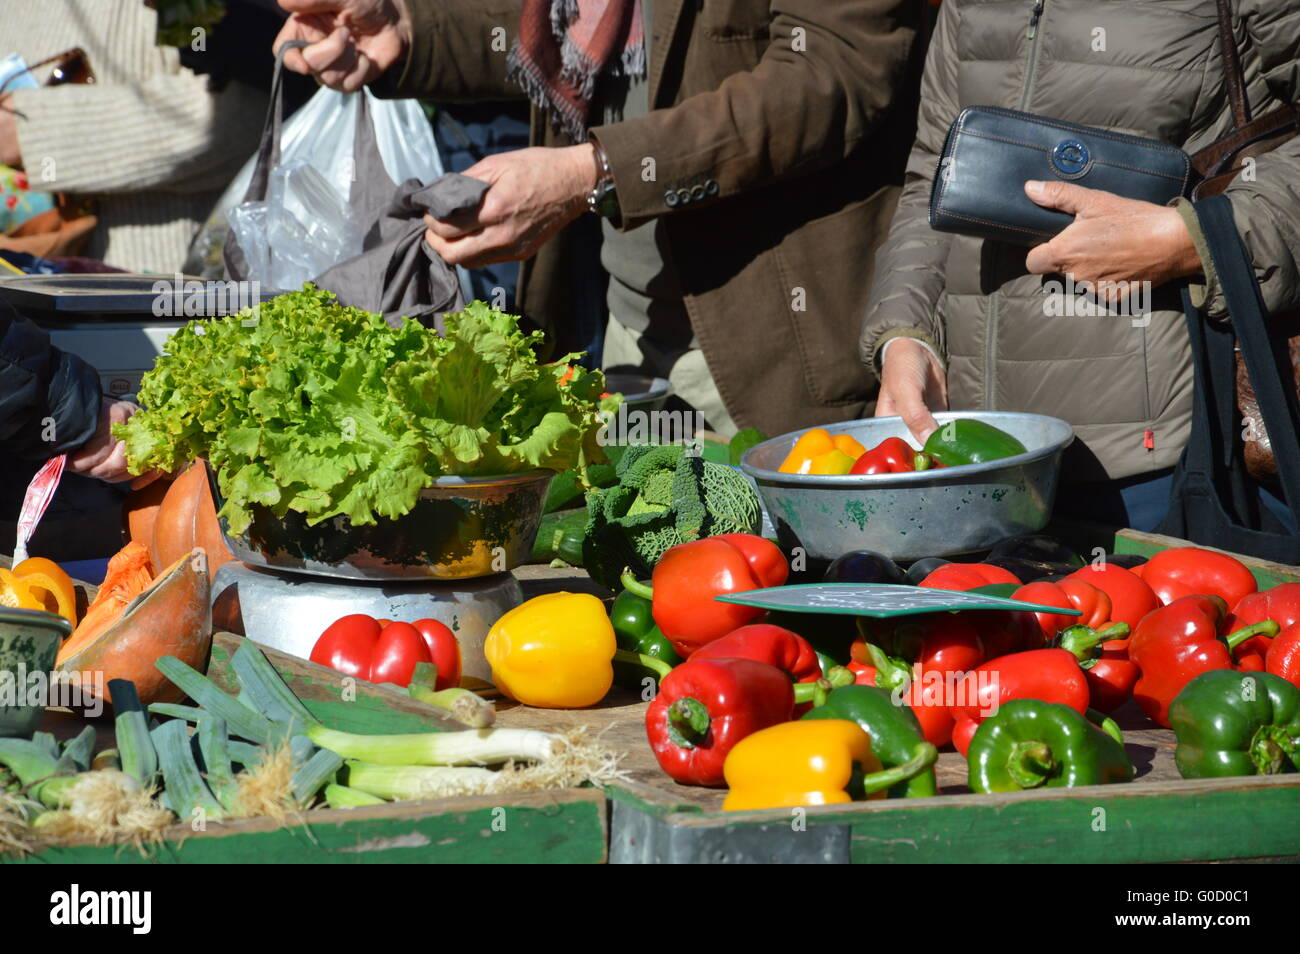 Purchase at the weekly market - Stock Image